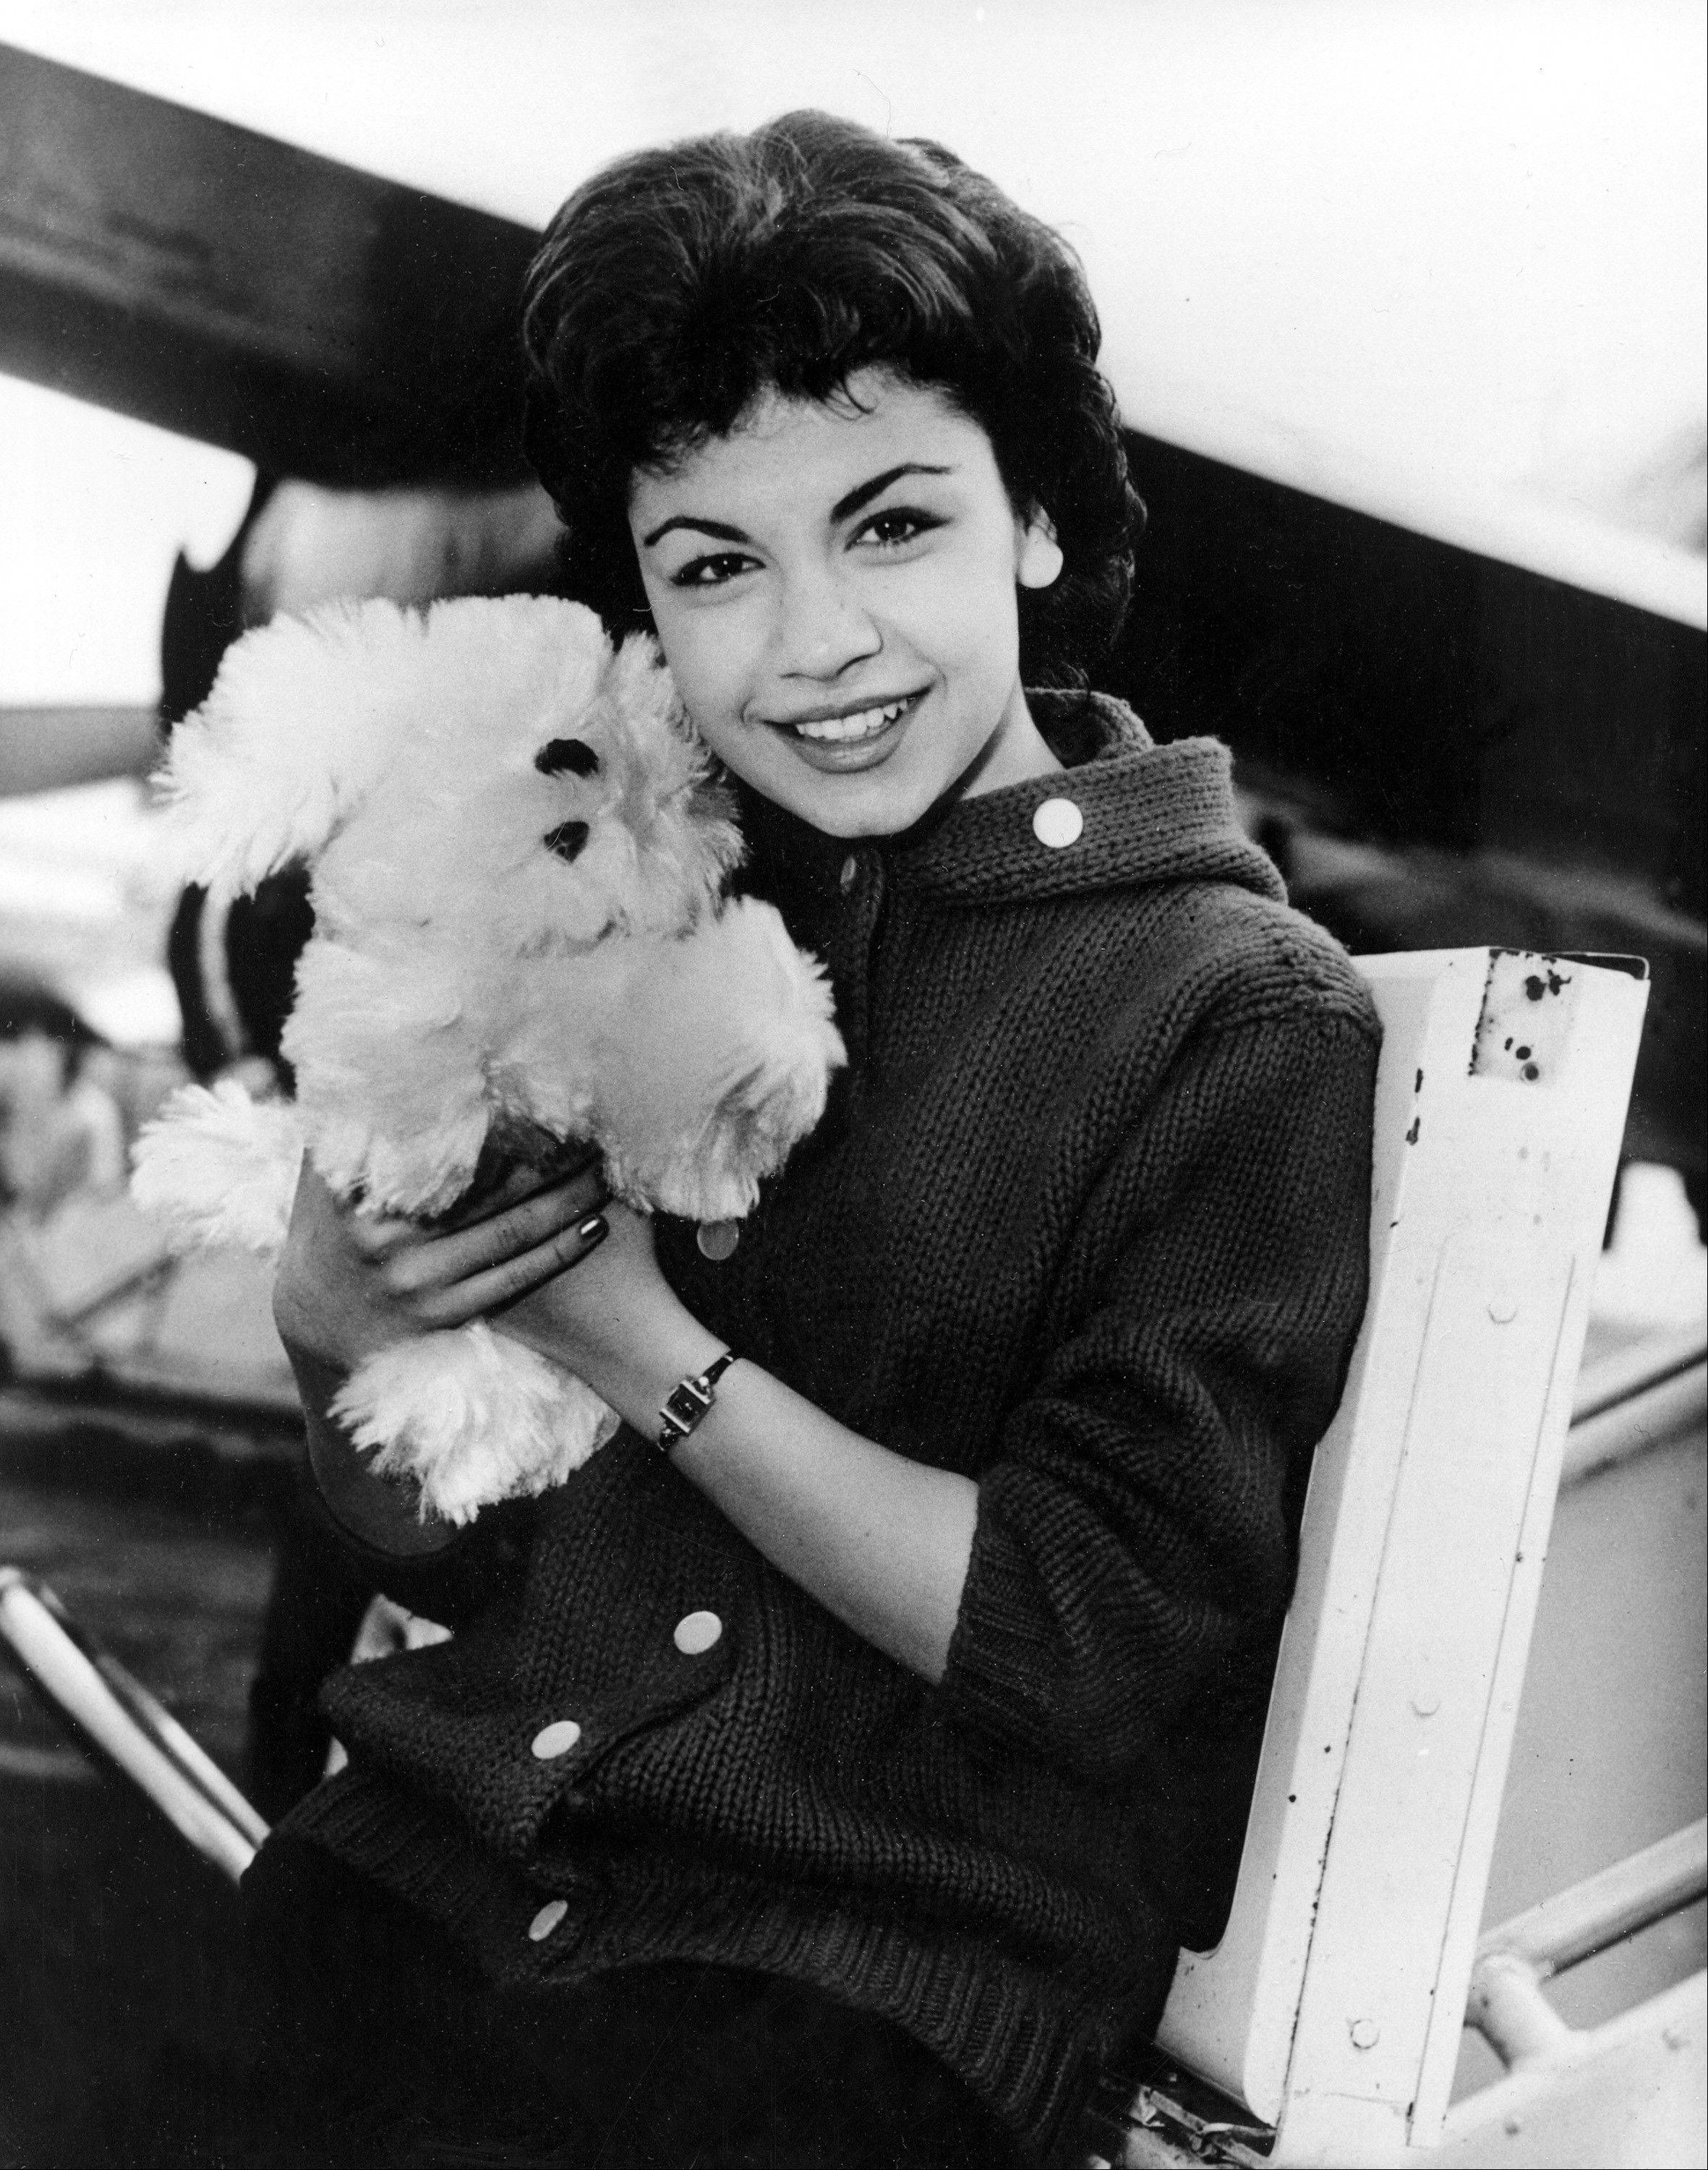 In this March 24, 1959 file photo, 16-year-old Annette Funicello poses with her Shaggy Dog doll, at Idlewild Airport in New York. Funicello, also known for her beach movies with Frankie Avalon, died April 8, 2013 at age 70.